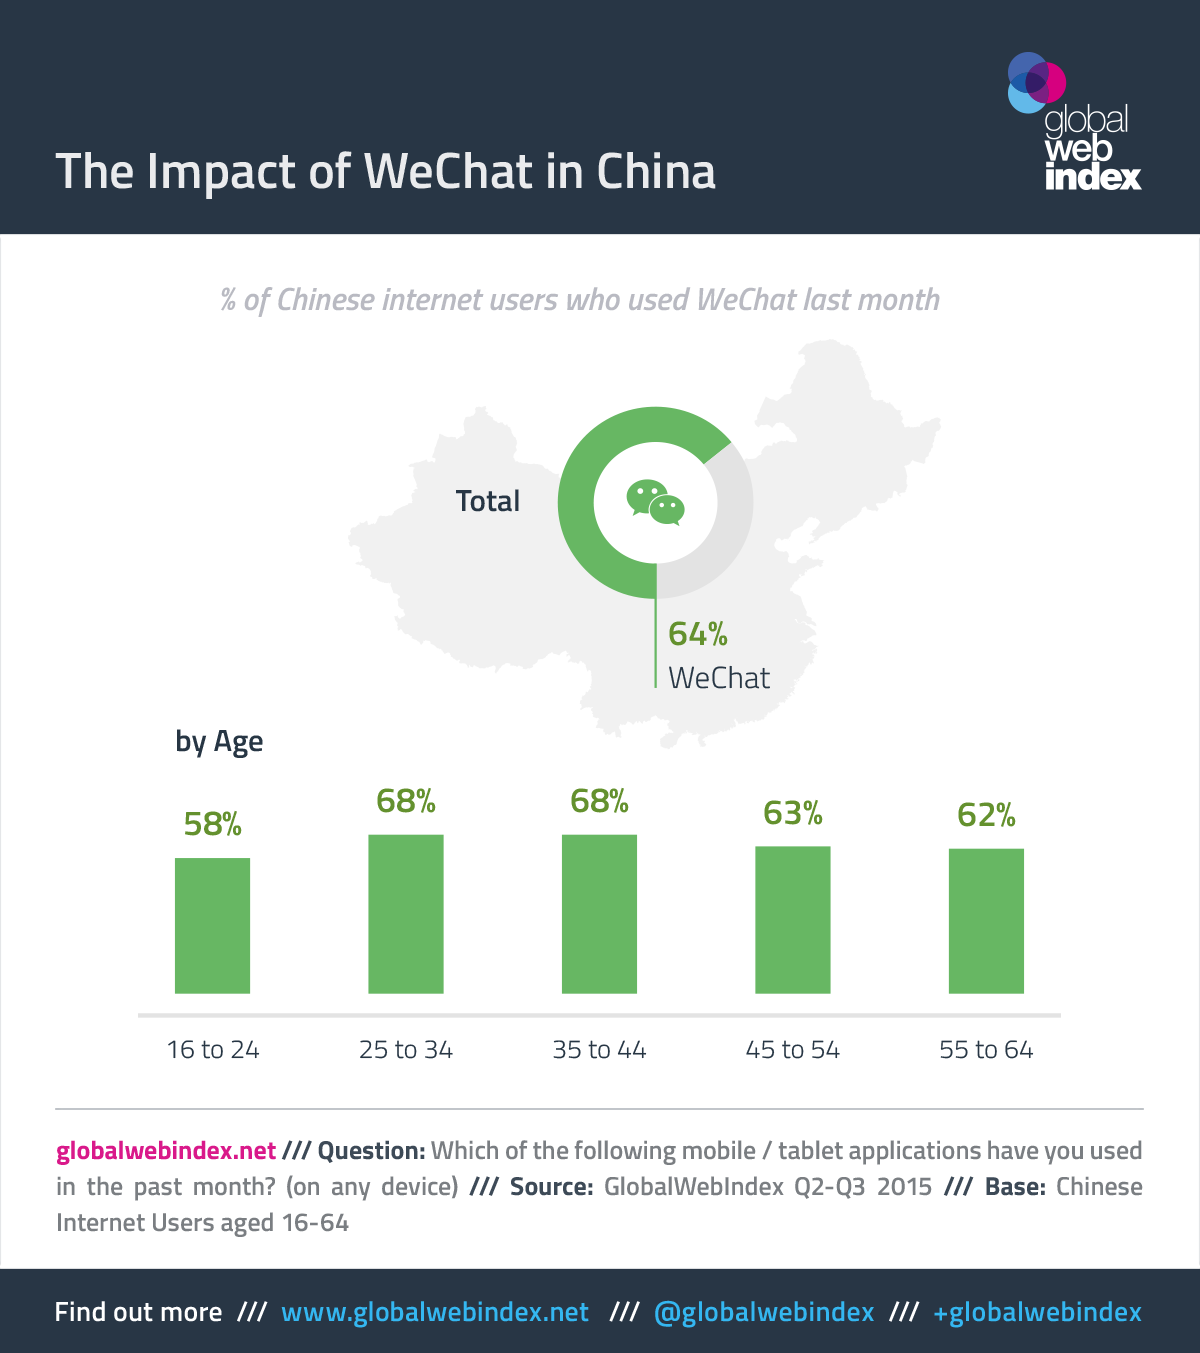 The Impact of WeChat in China